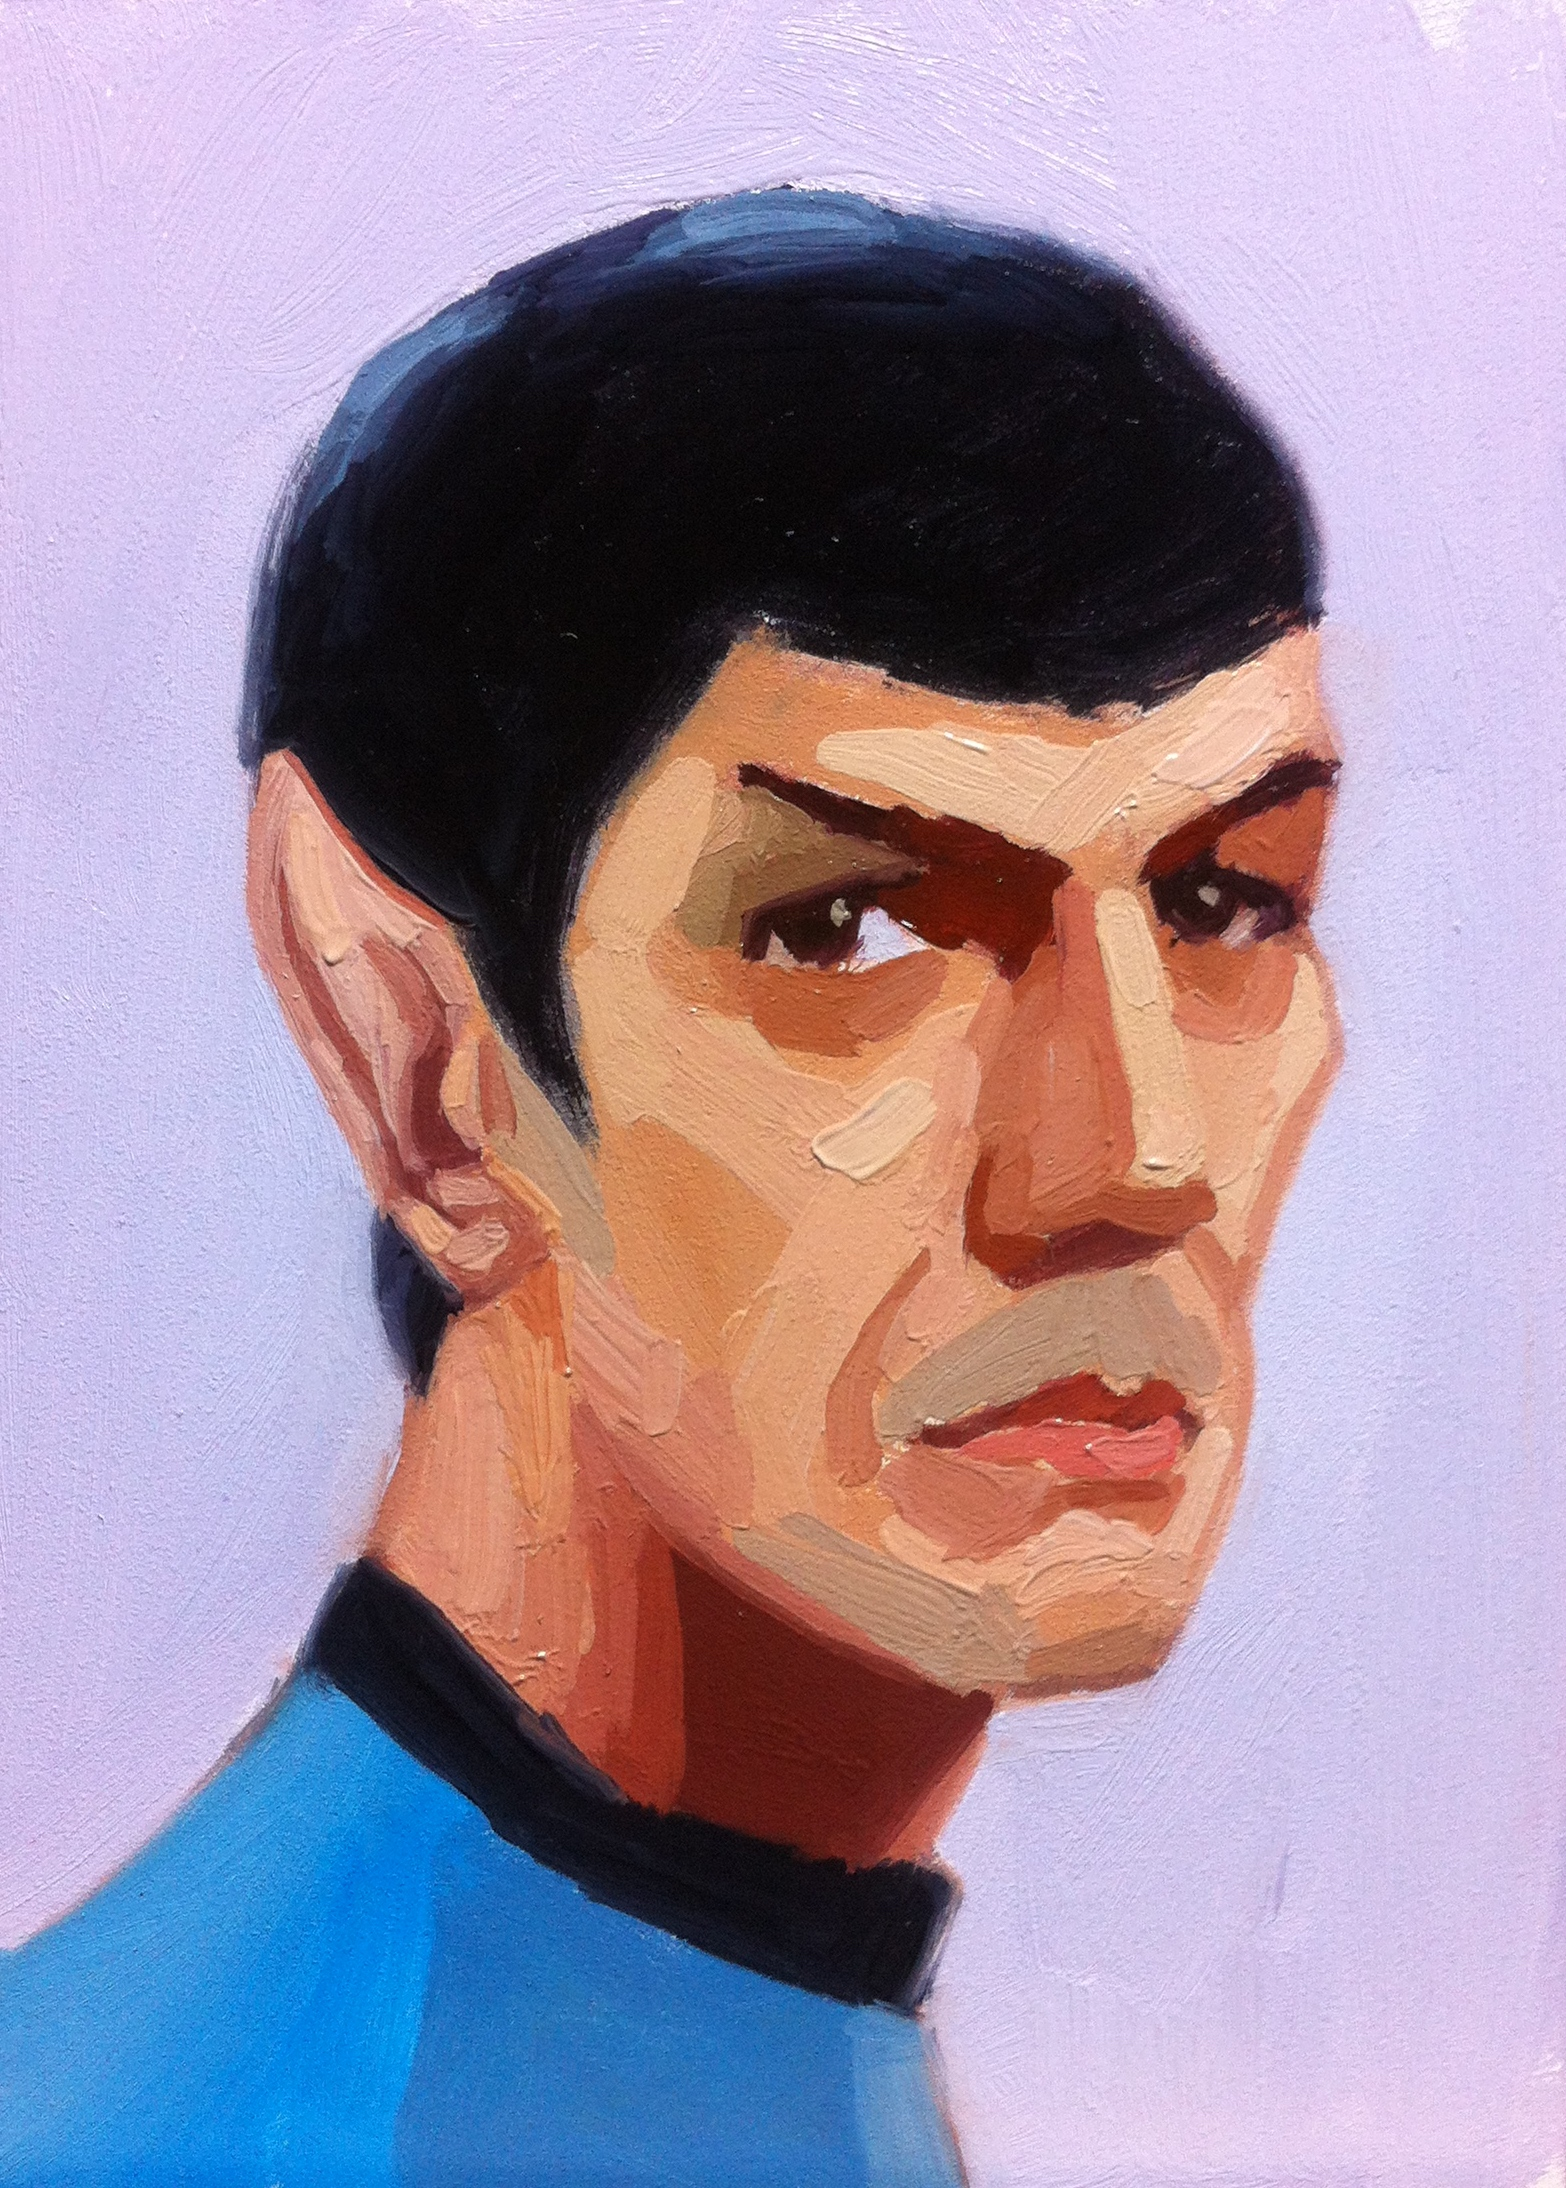 Dr. Spock, 5 x 7, oil on board.